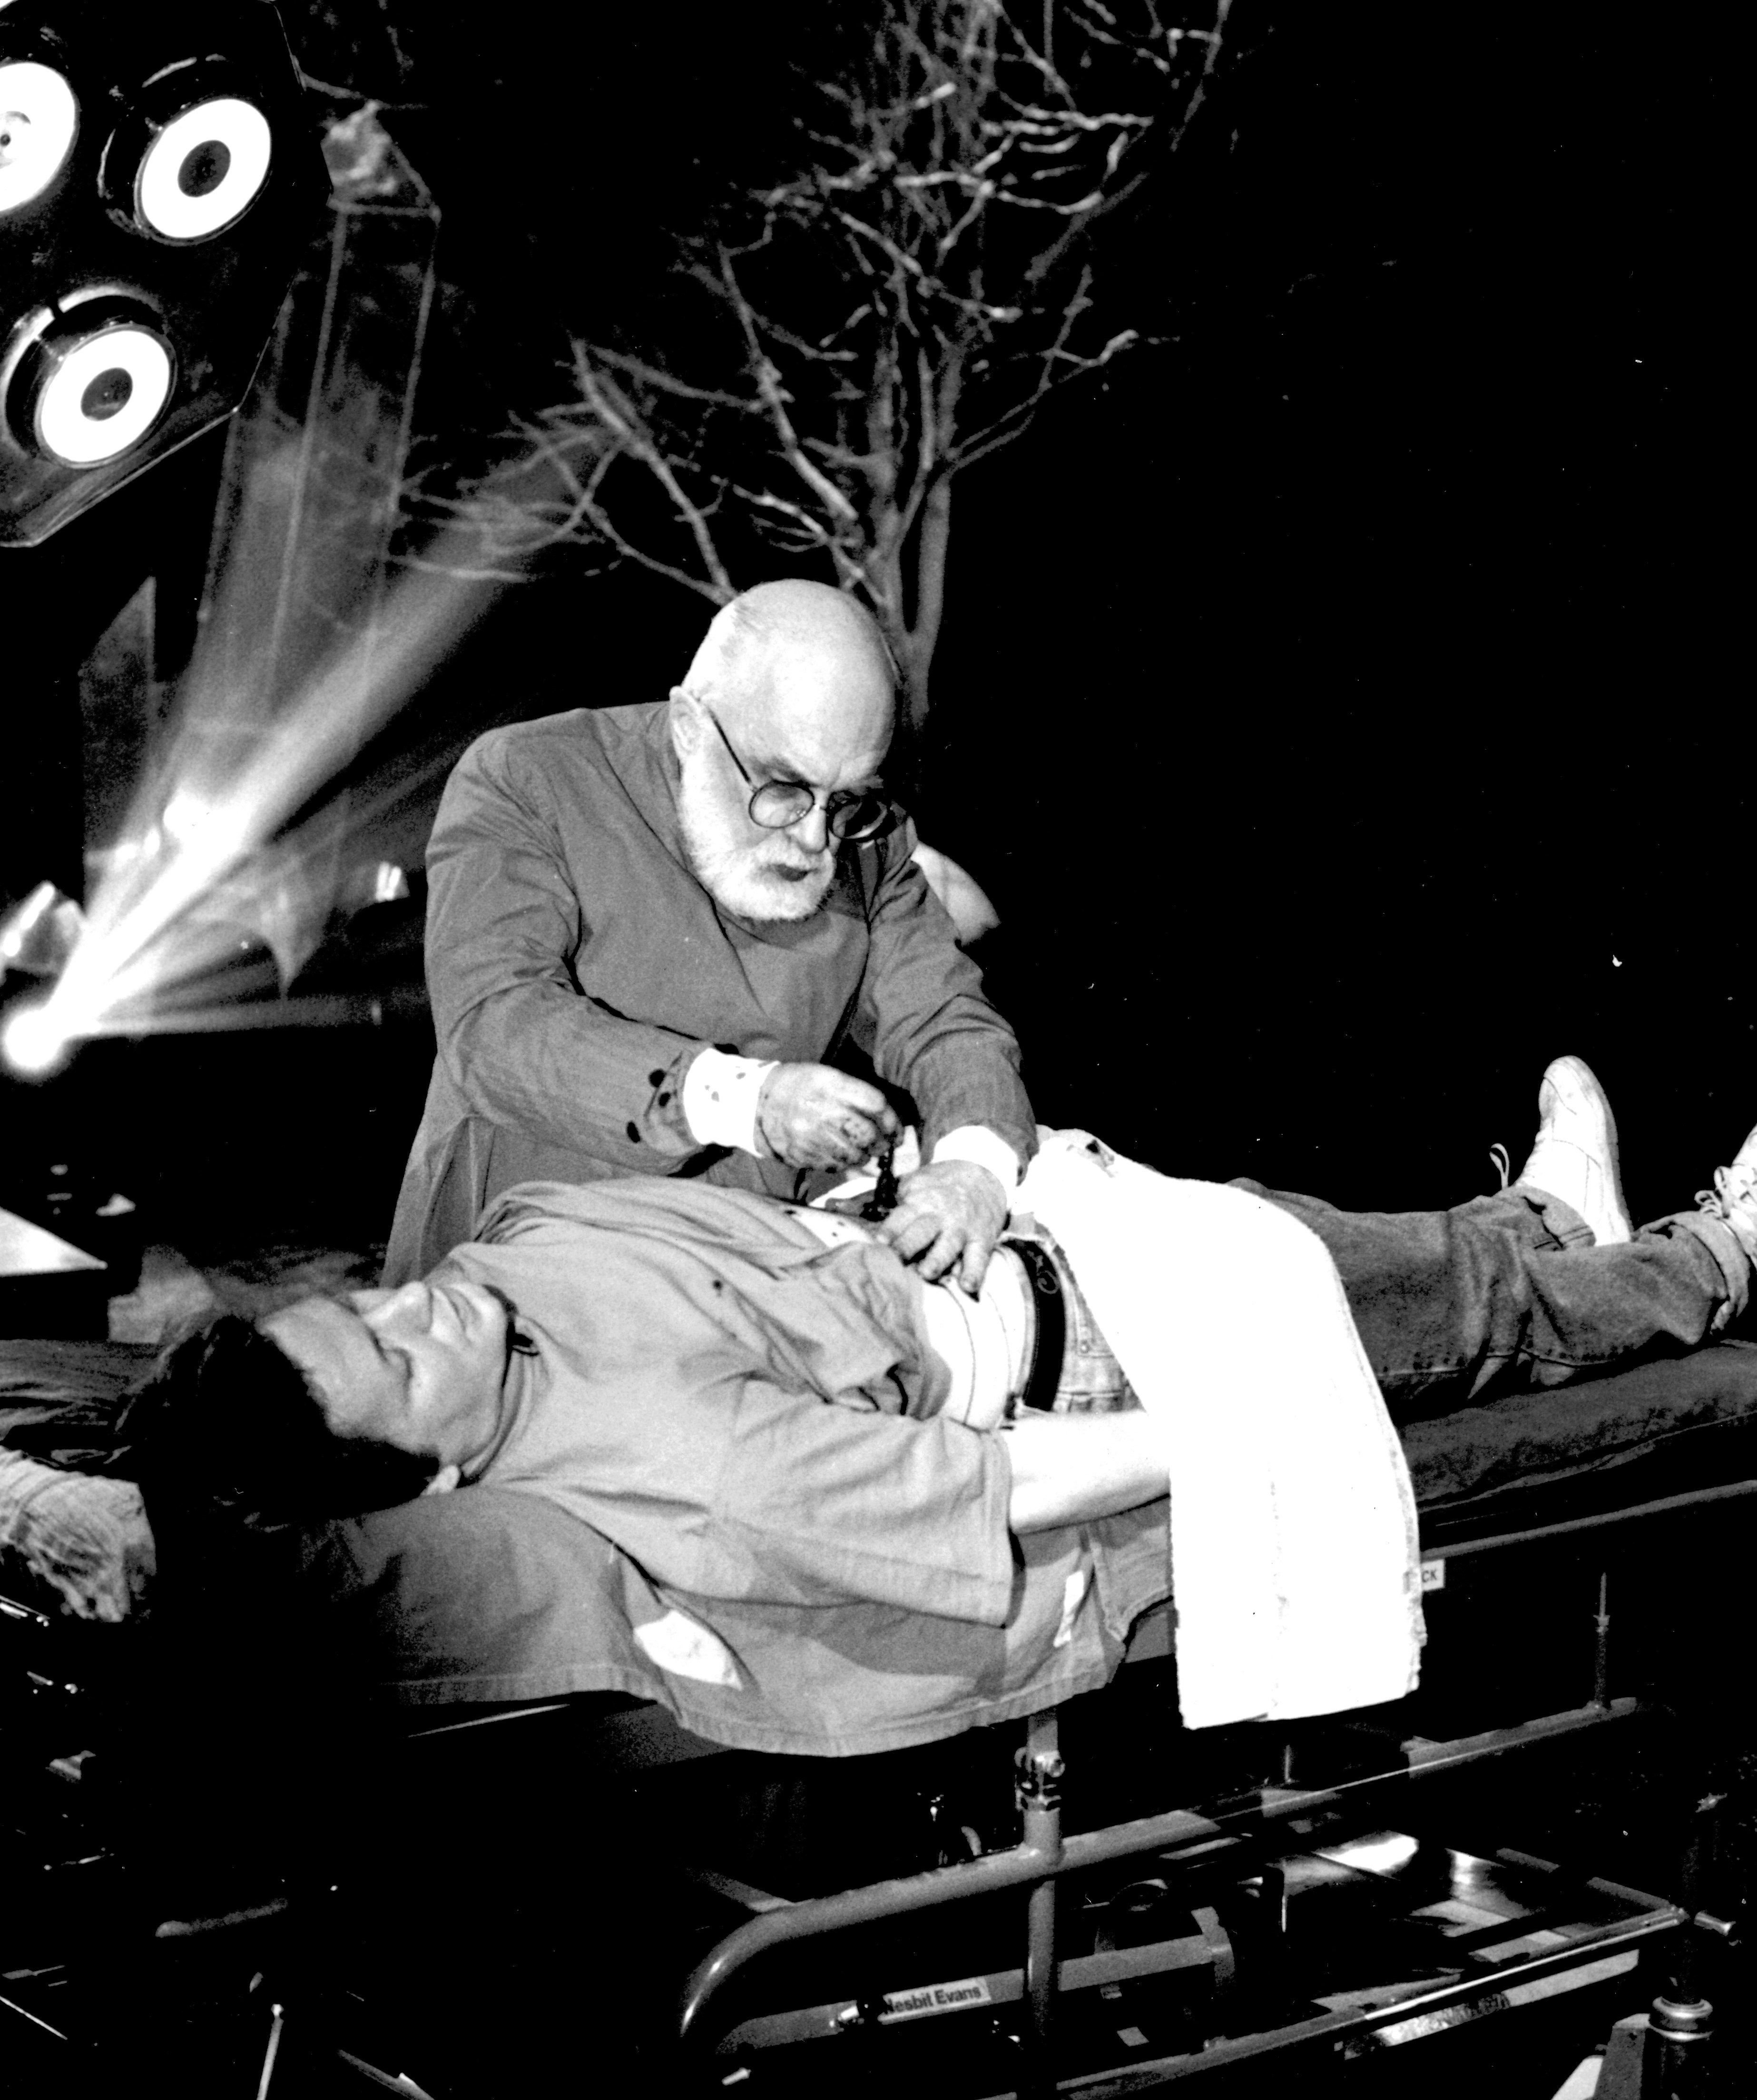 psychic surgery pseudoscience ancient medical practice